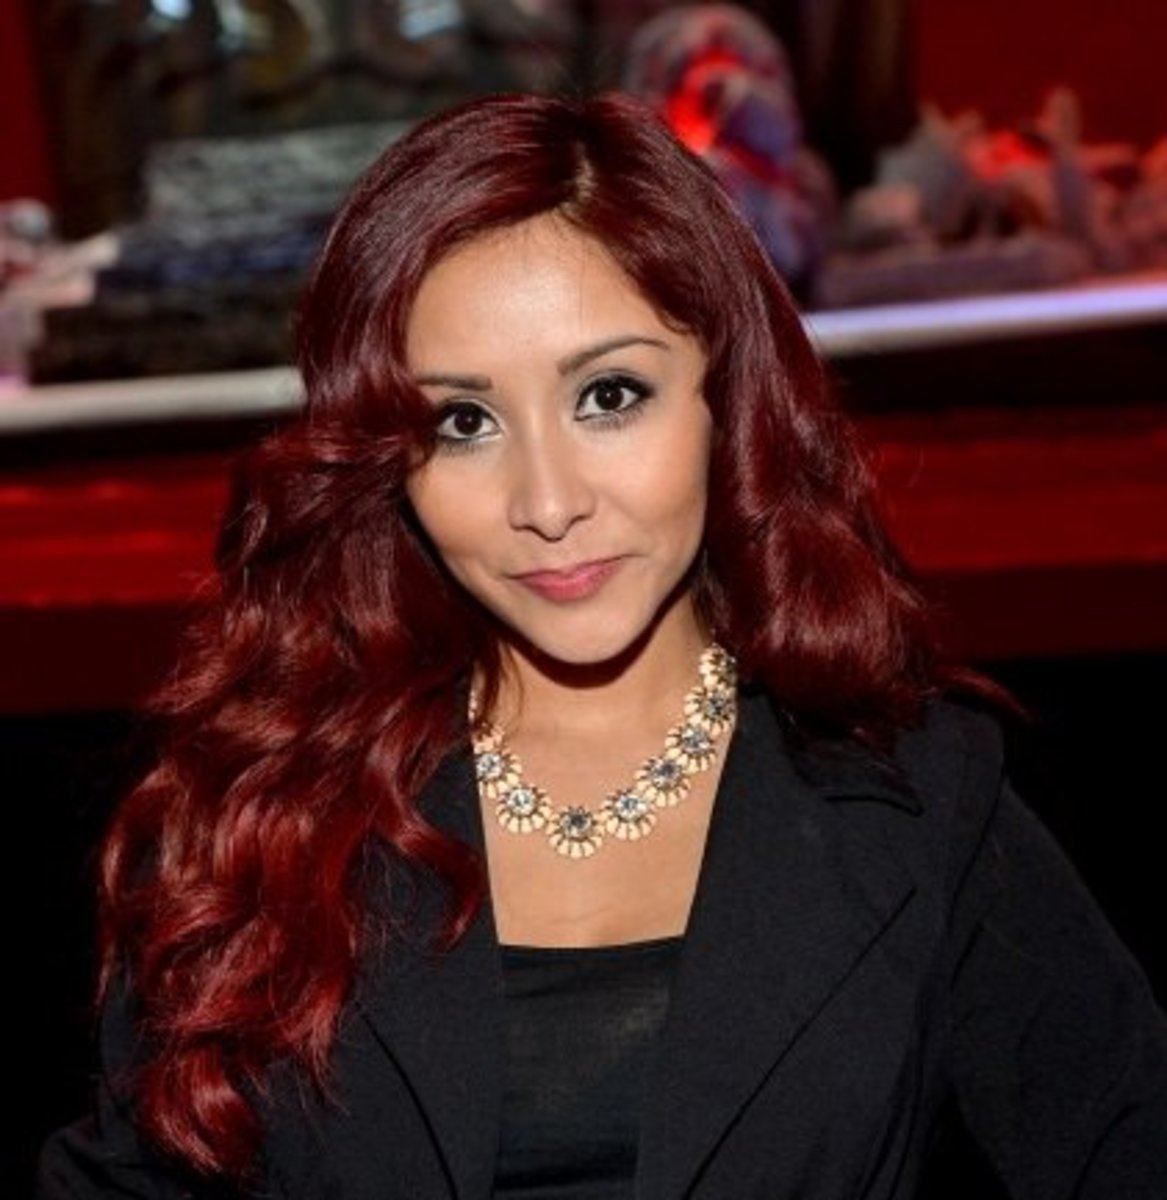 Snooki with mahogany hair and olive skin tone.